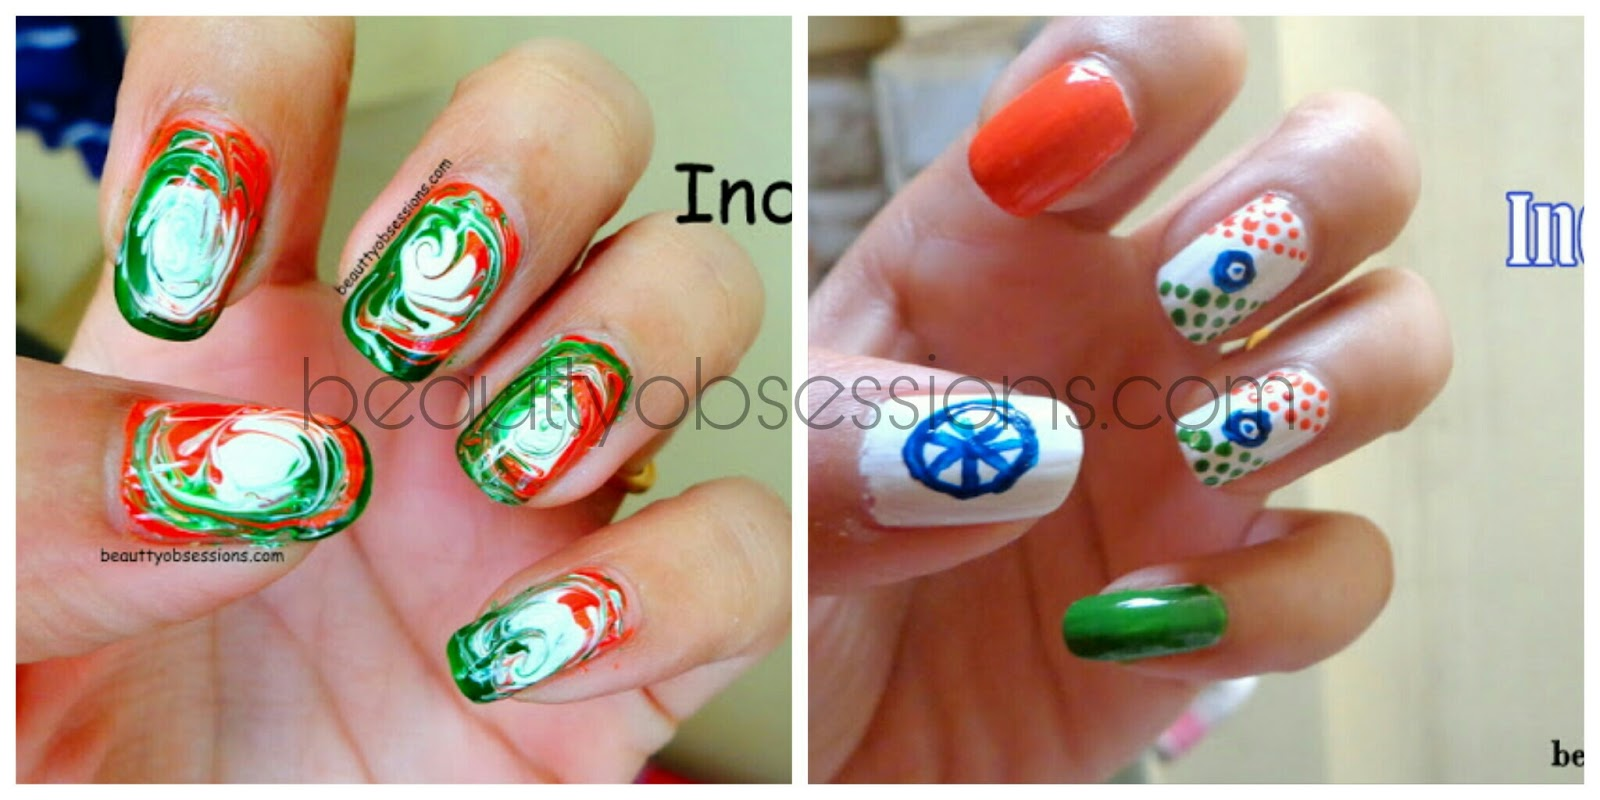 Indian independence day inspired nailart step by step tutorial hope you enjoyed this easy to create independence day inspired nailart see you soon with some more amazing creations prinsesfo Image collections